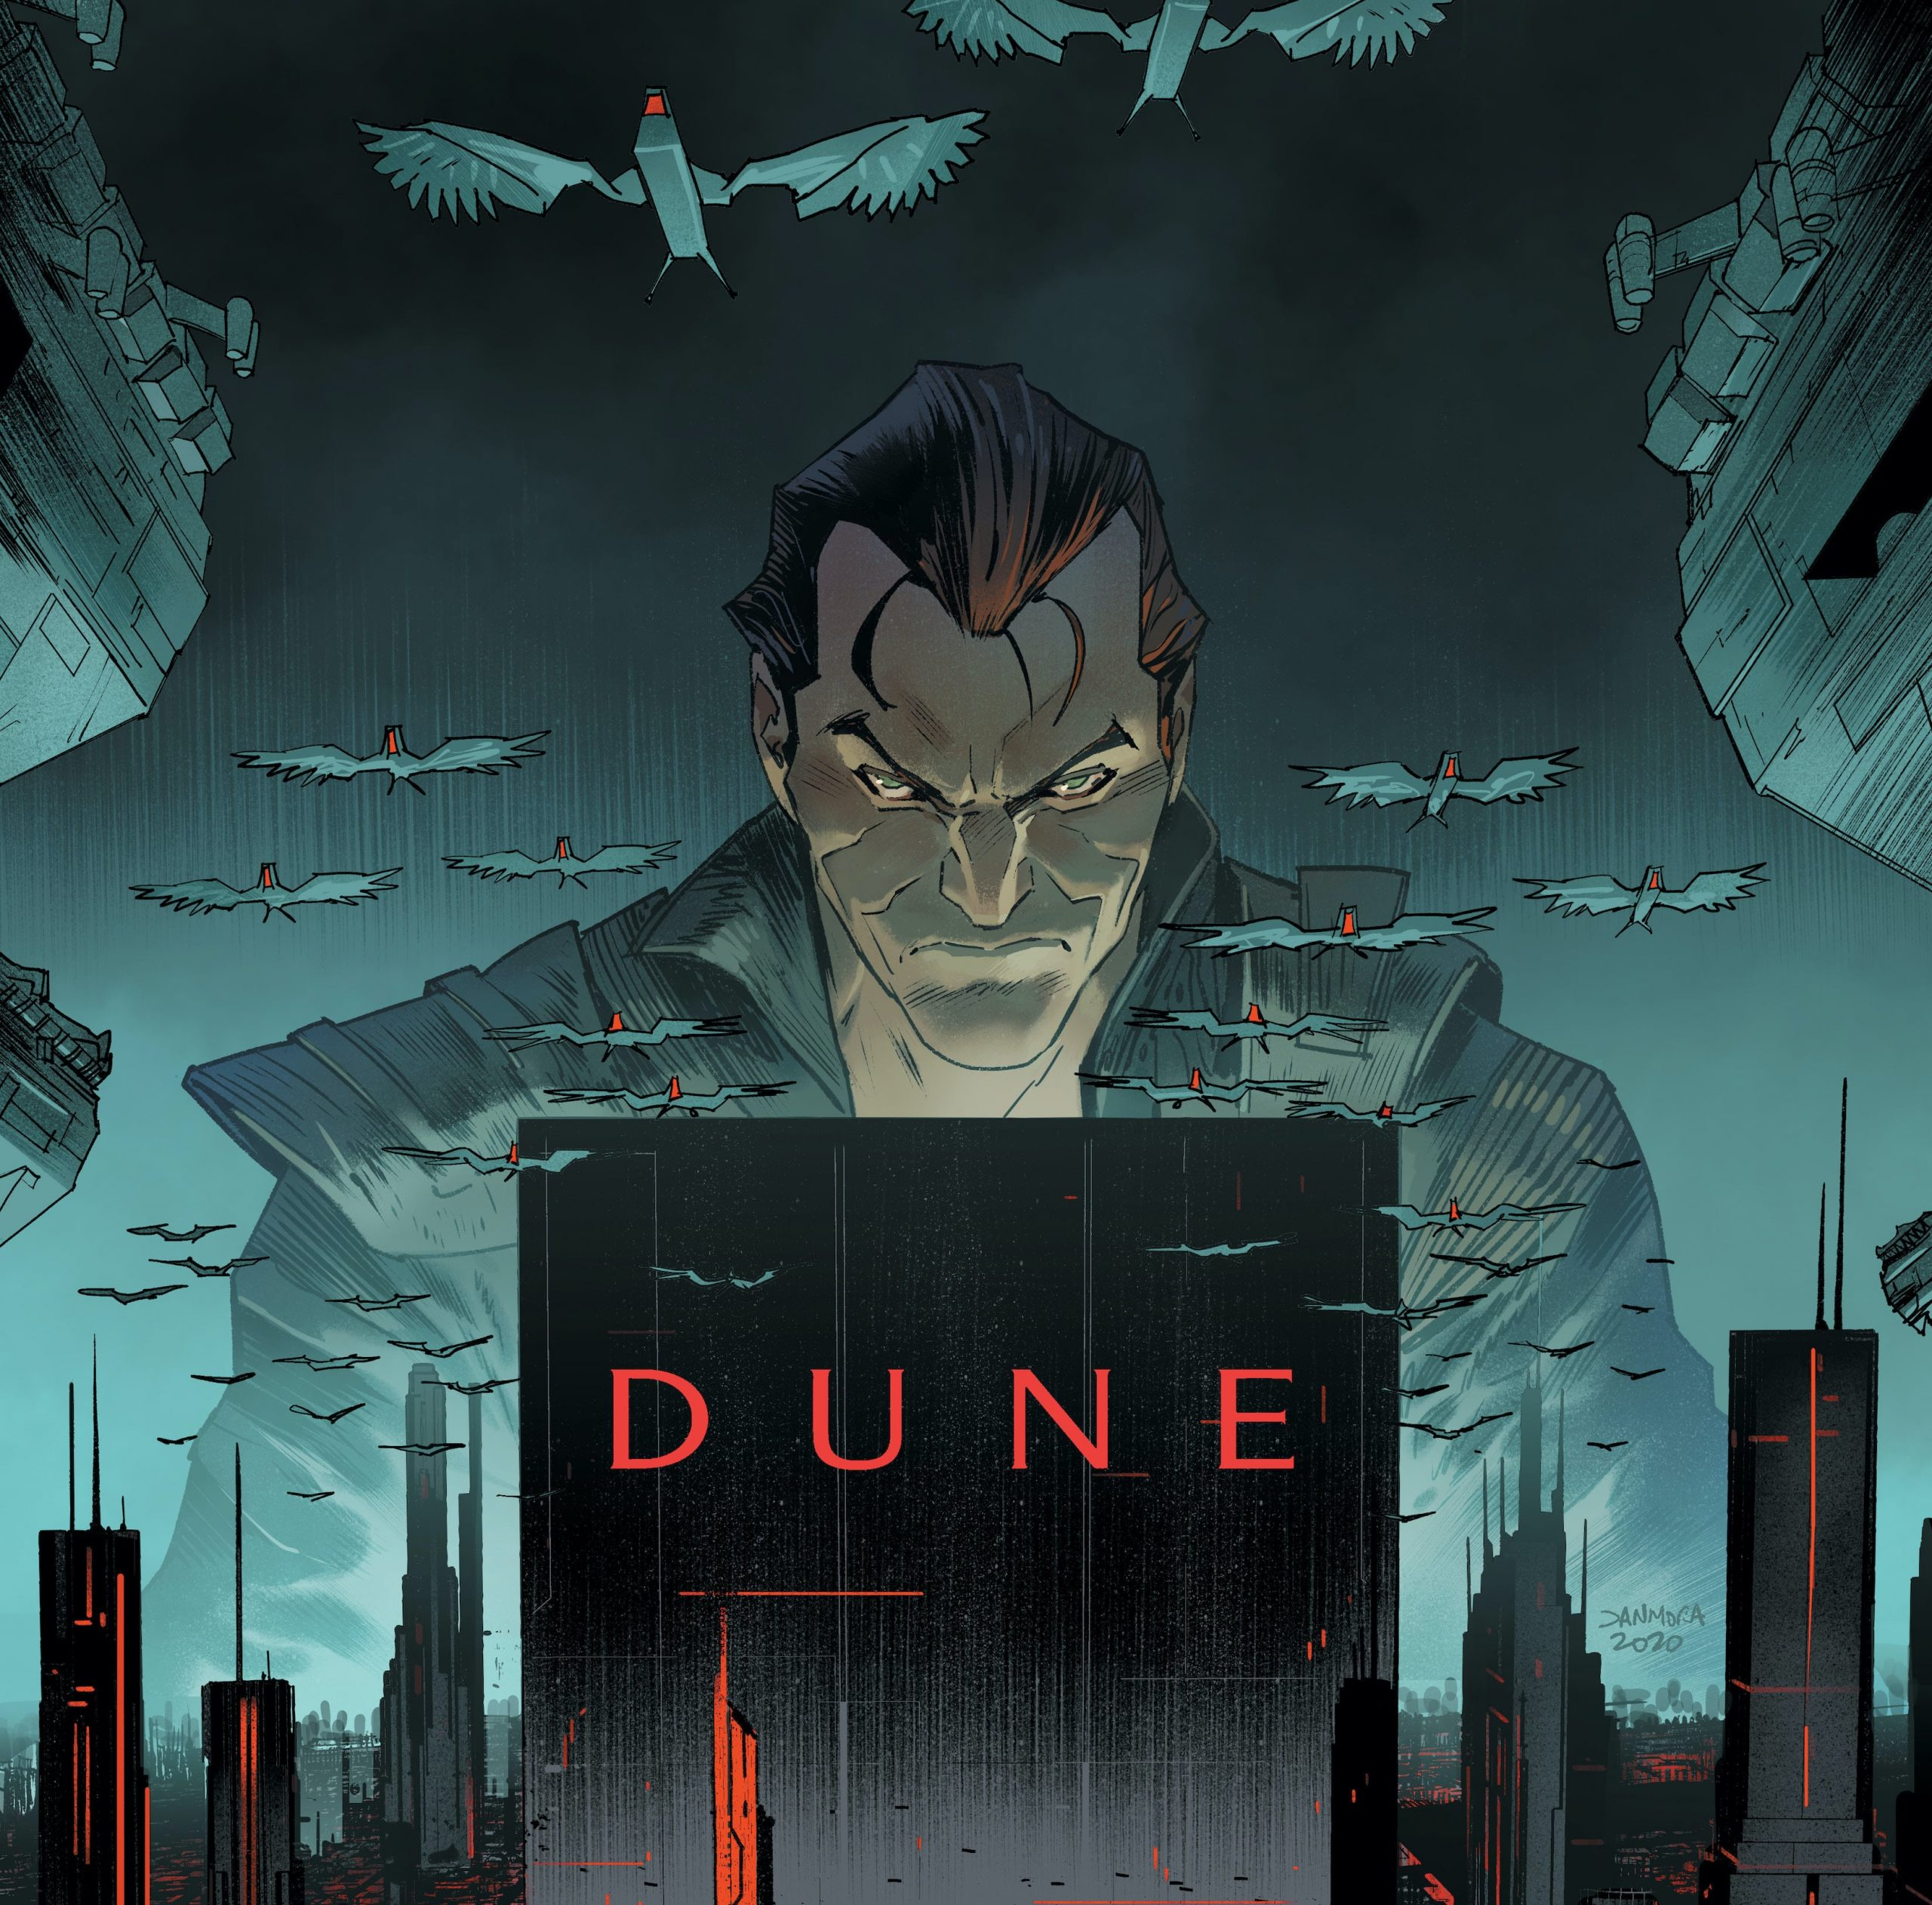 Dune: House Atreides is set to release this October.